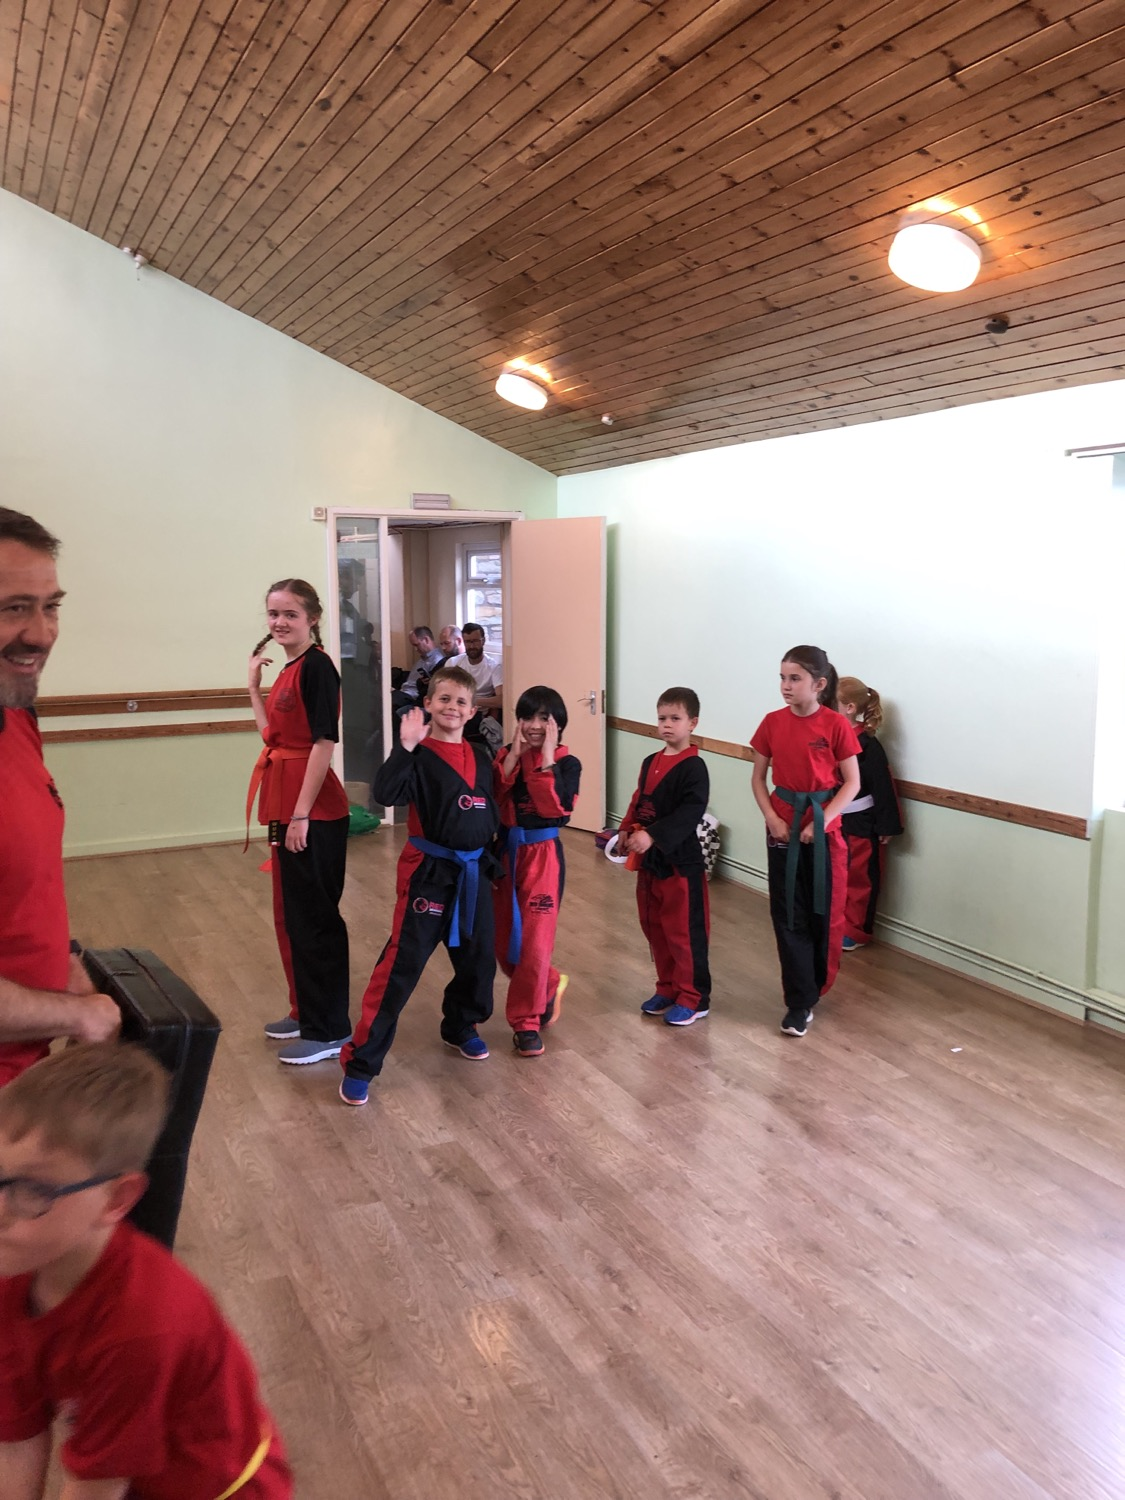 Red Dragons Martial Arts Bristol Henleaze Horfield Bishopston Childrens Martial Arts Children's Kick